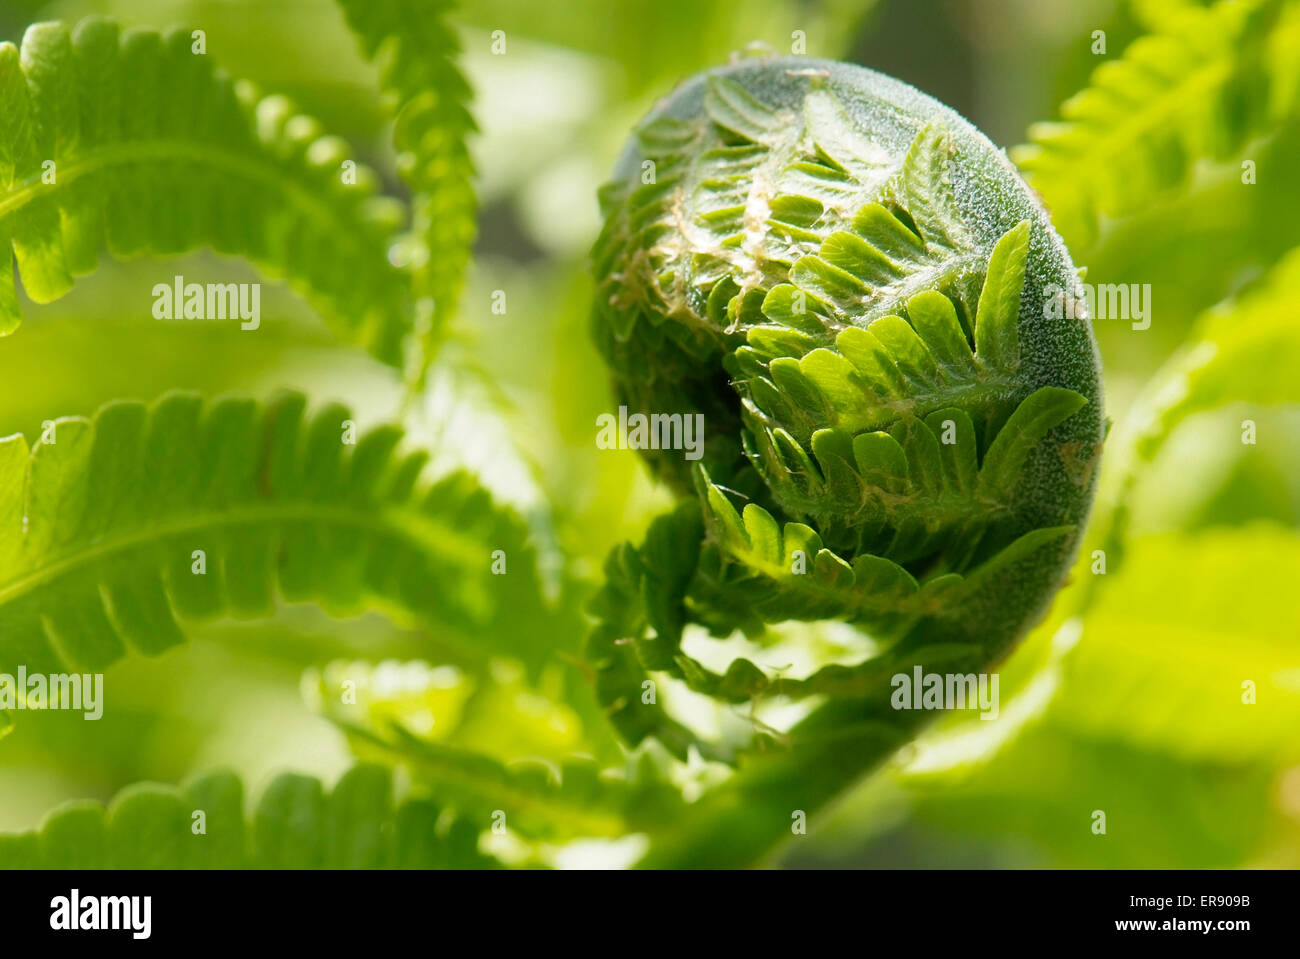 close up young leaf of fern Matteuccia struthiopteris - Stock Image